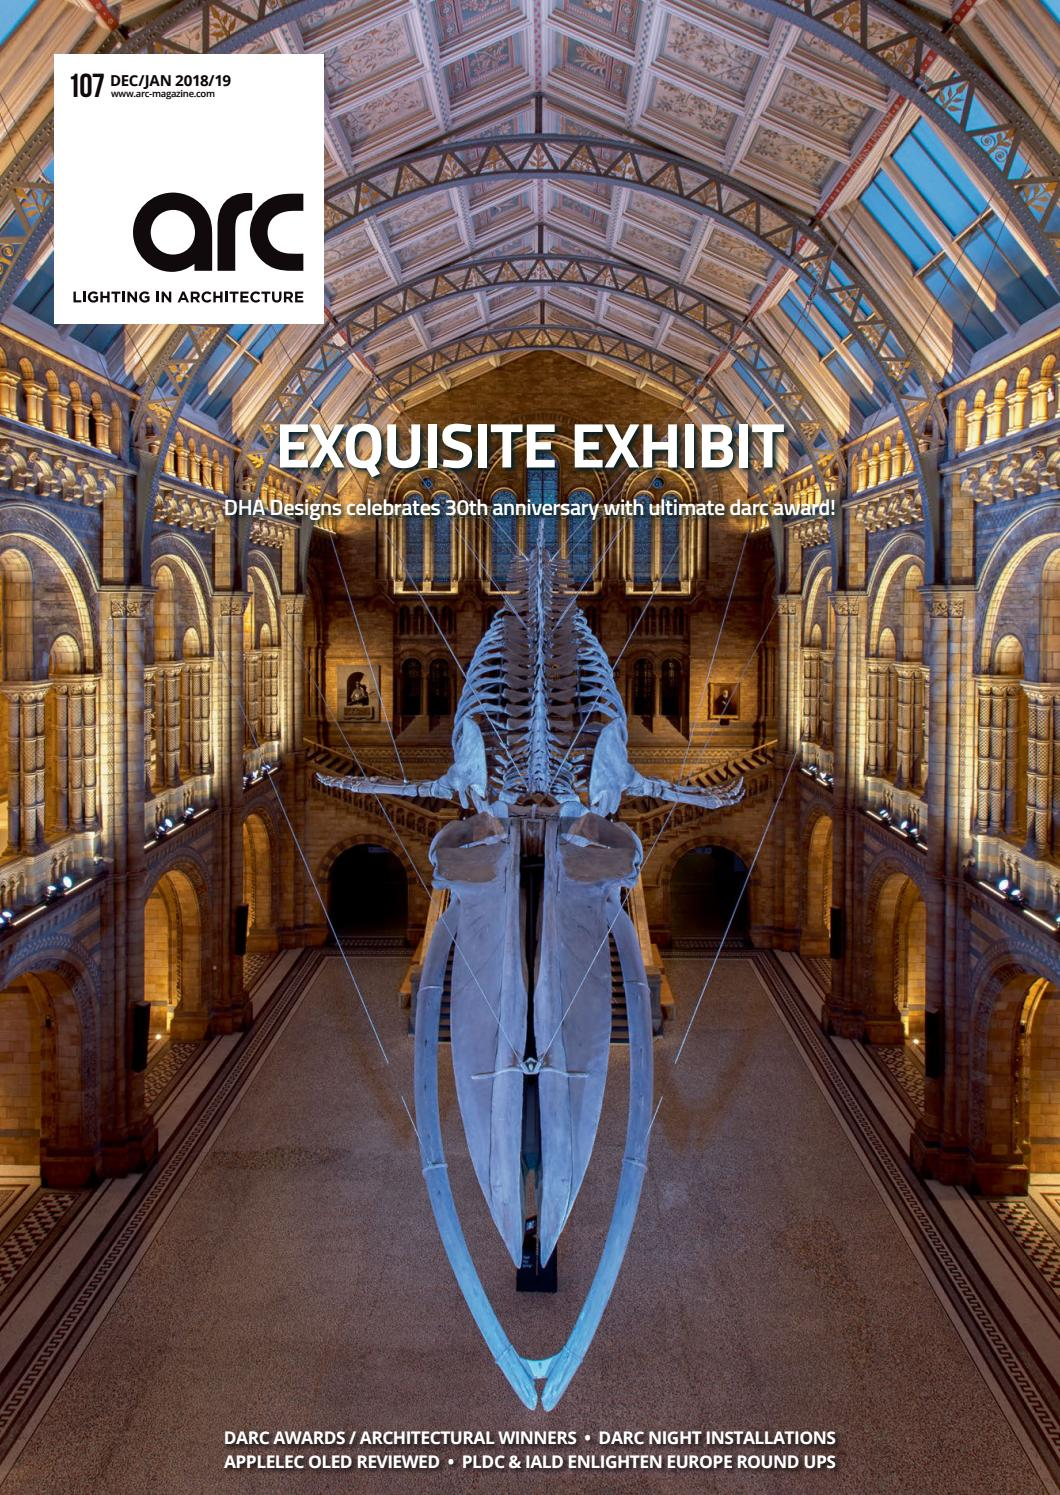 Arc December January 2018 19 Issue 107 By Mondiale Media Issuu